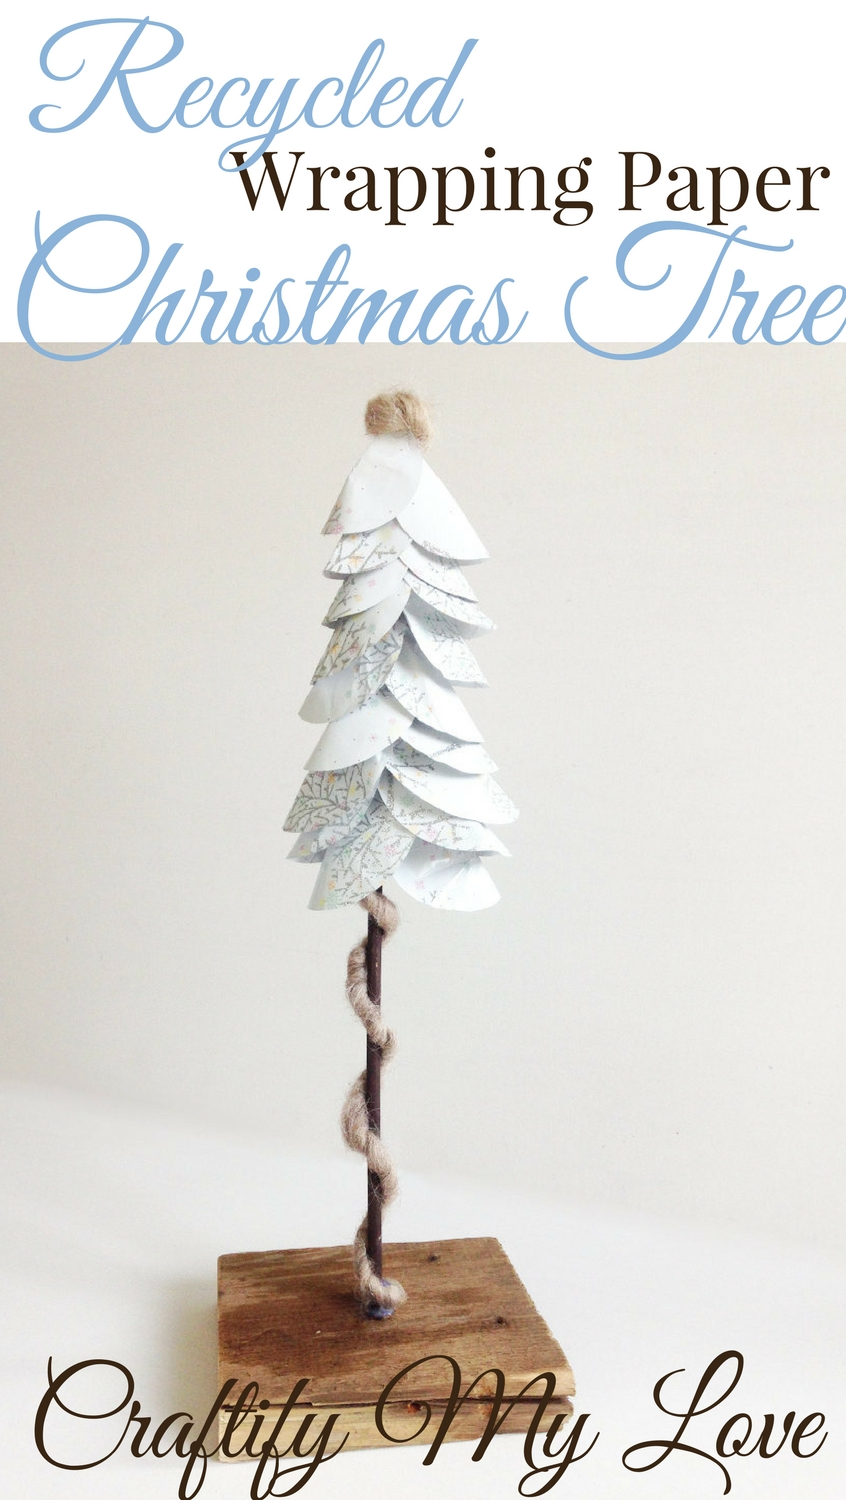 DIY Recycled Wrapping Paper Christmas Tree | #papercrafts #christmasdecorations #diychristmasdecor #reclaimedwood #recycling #upcycling #recycledwrappingpaper